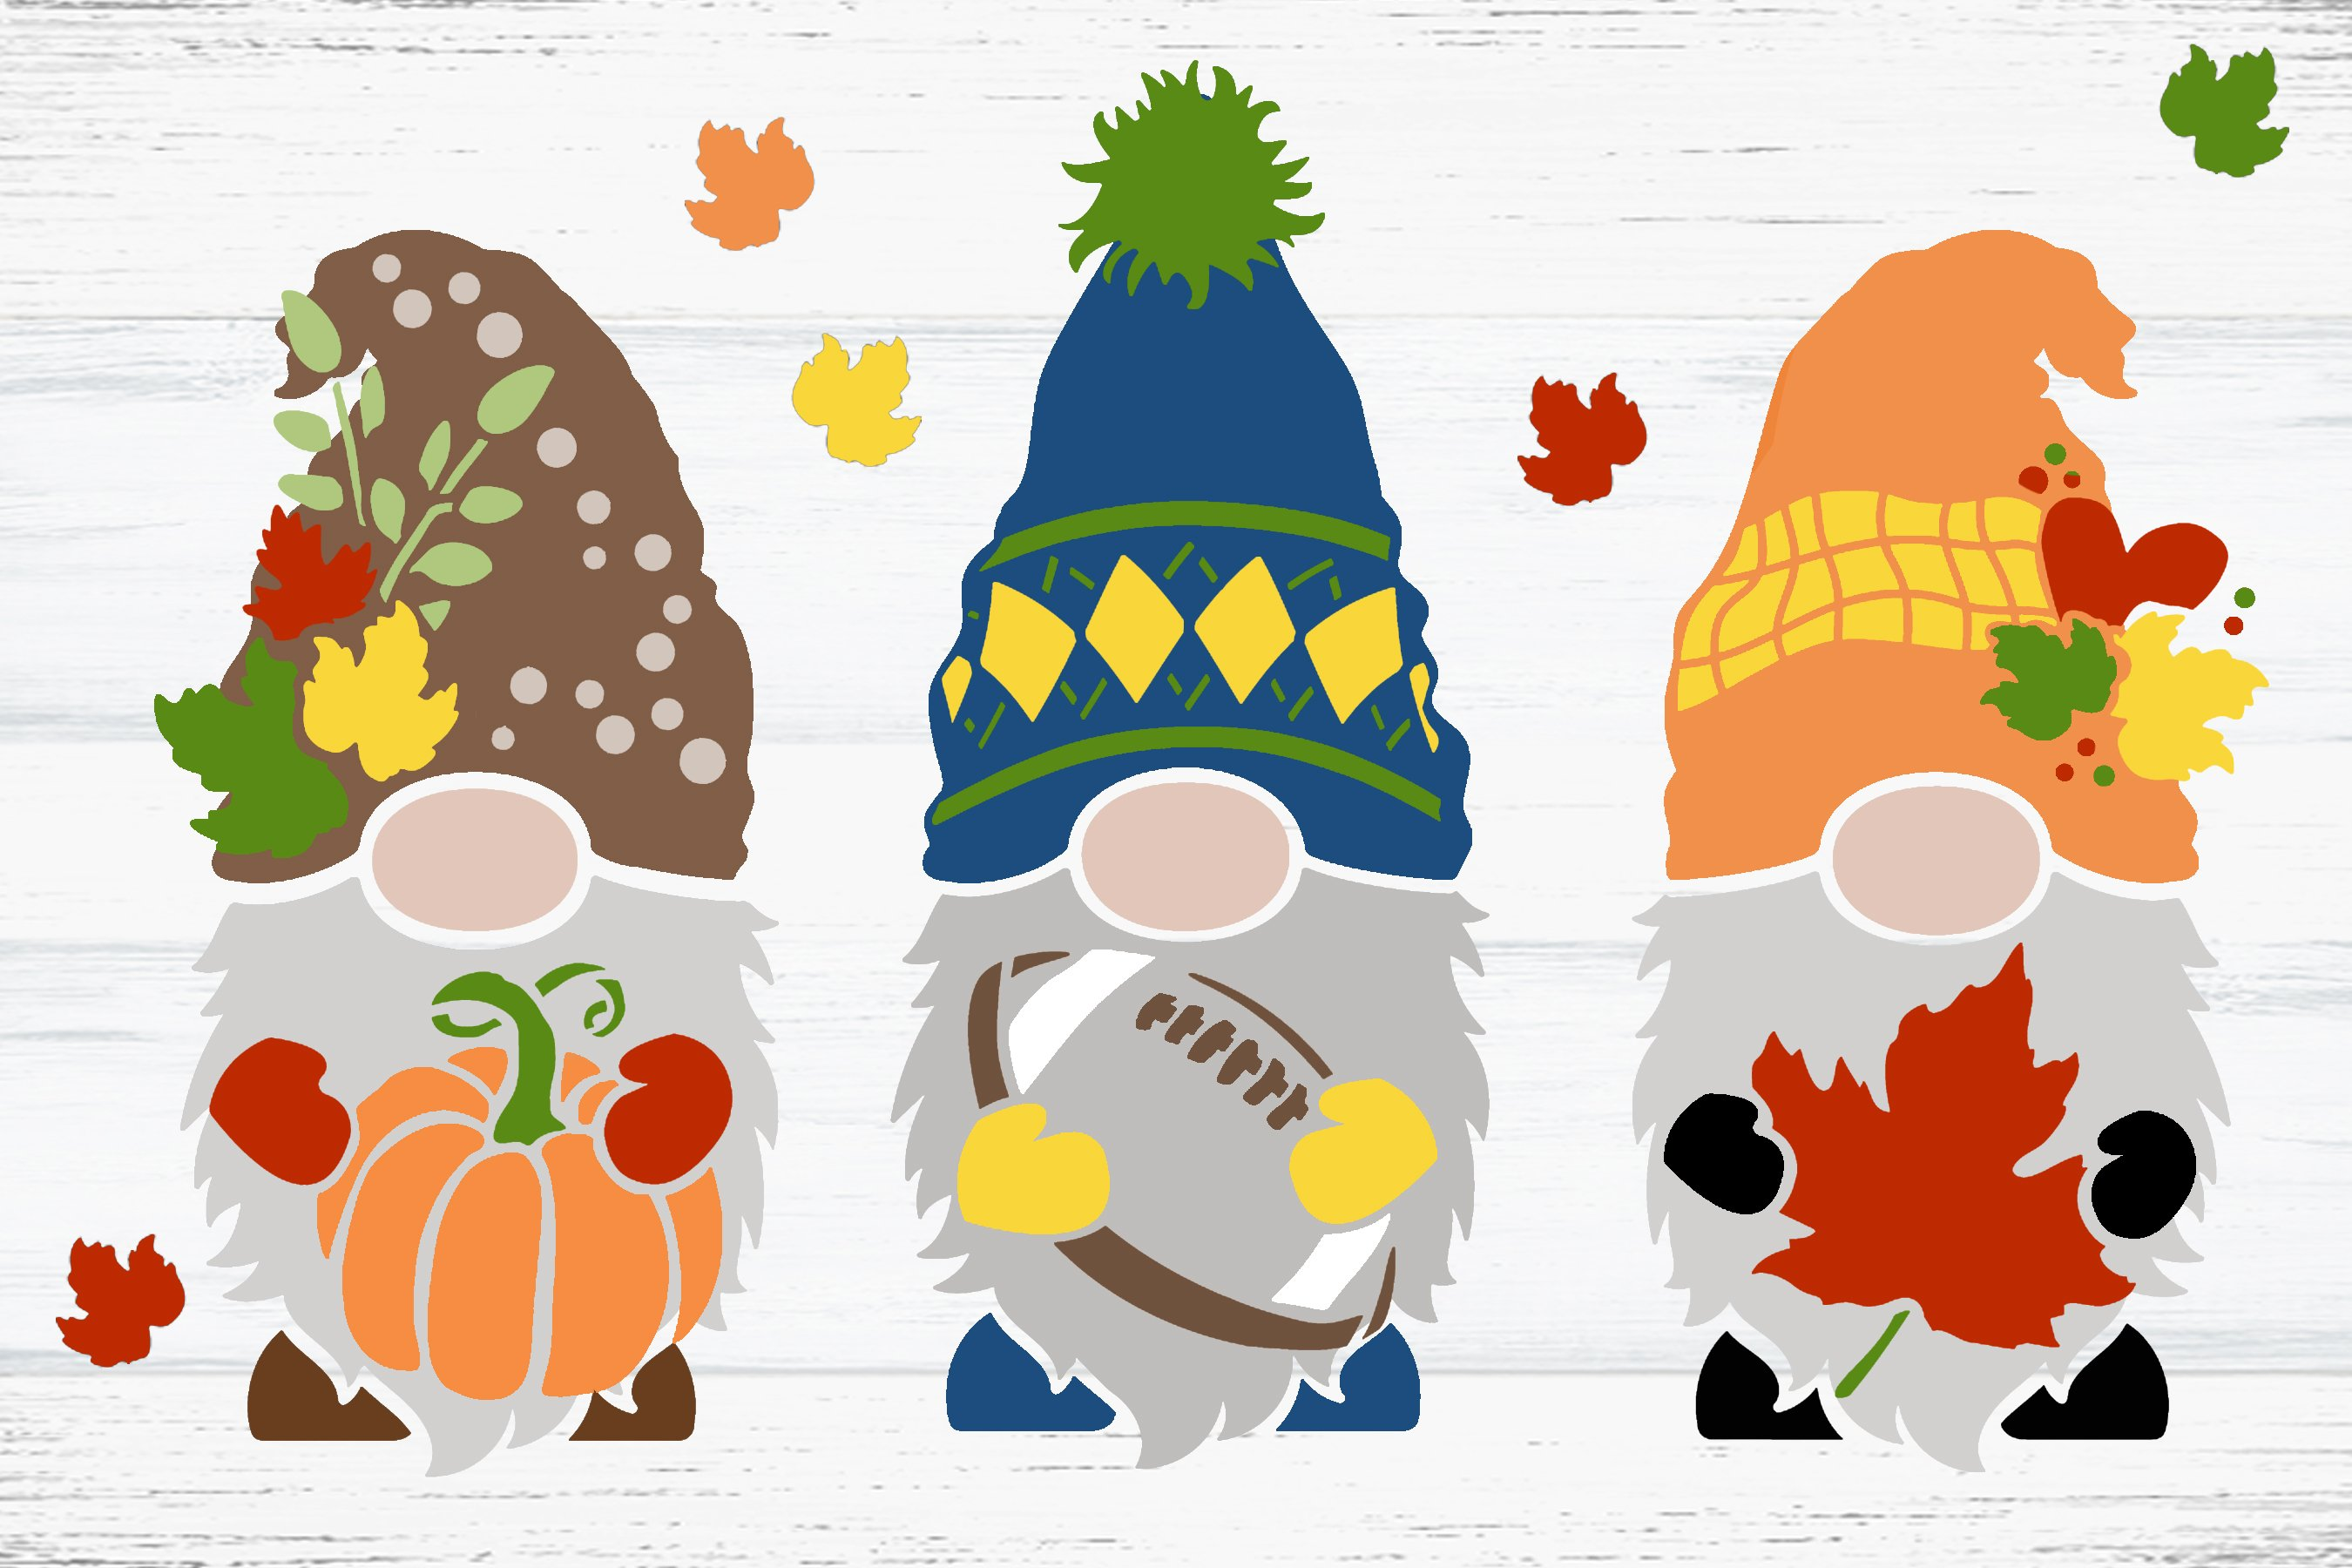 Fall Gnome Embellishment Stencil by StudioR12 | DIY Autumn Leaves Pumpkin Home Decor | Craft & Paint Wood Sign | Reusable Mylar Template | Select Size